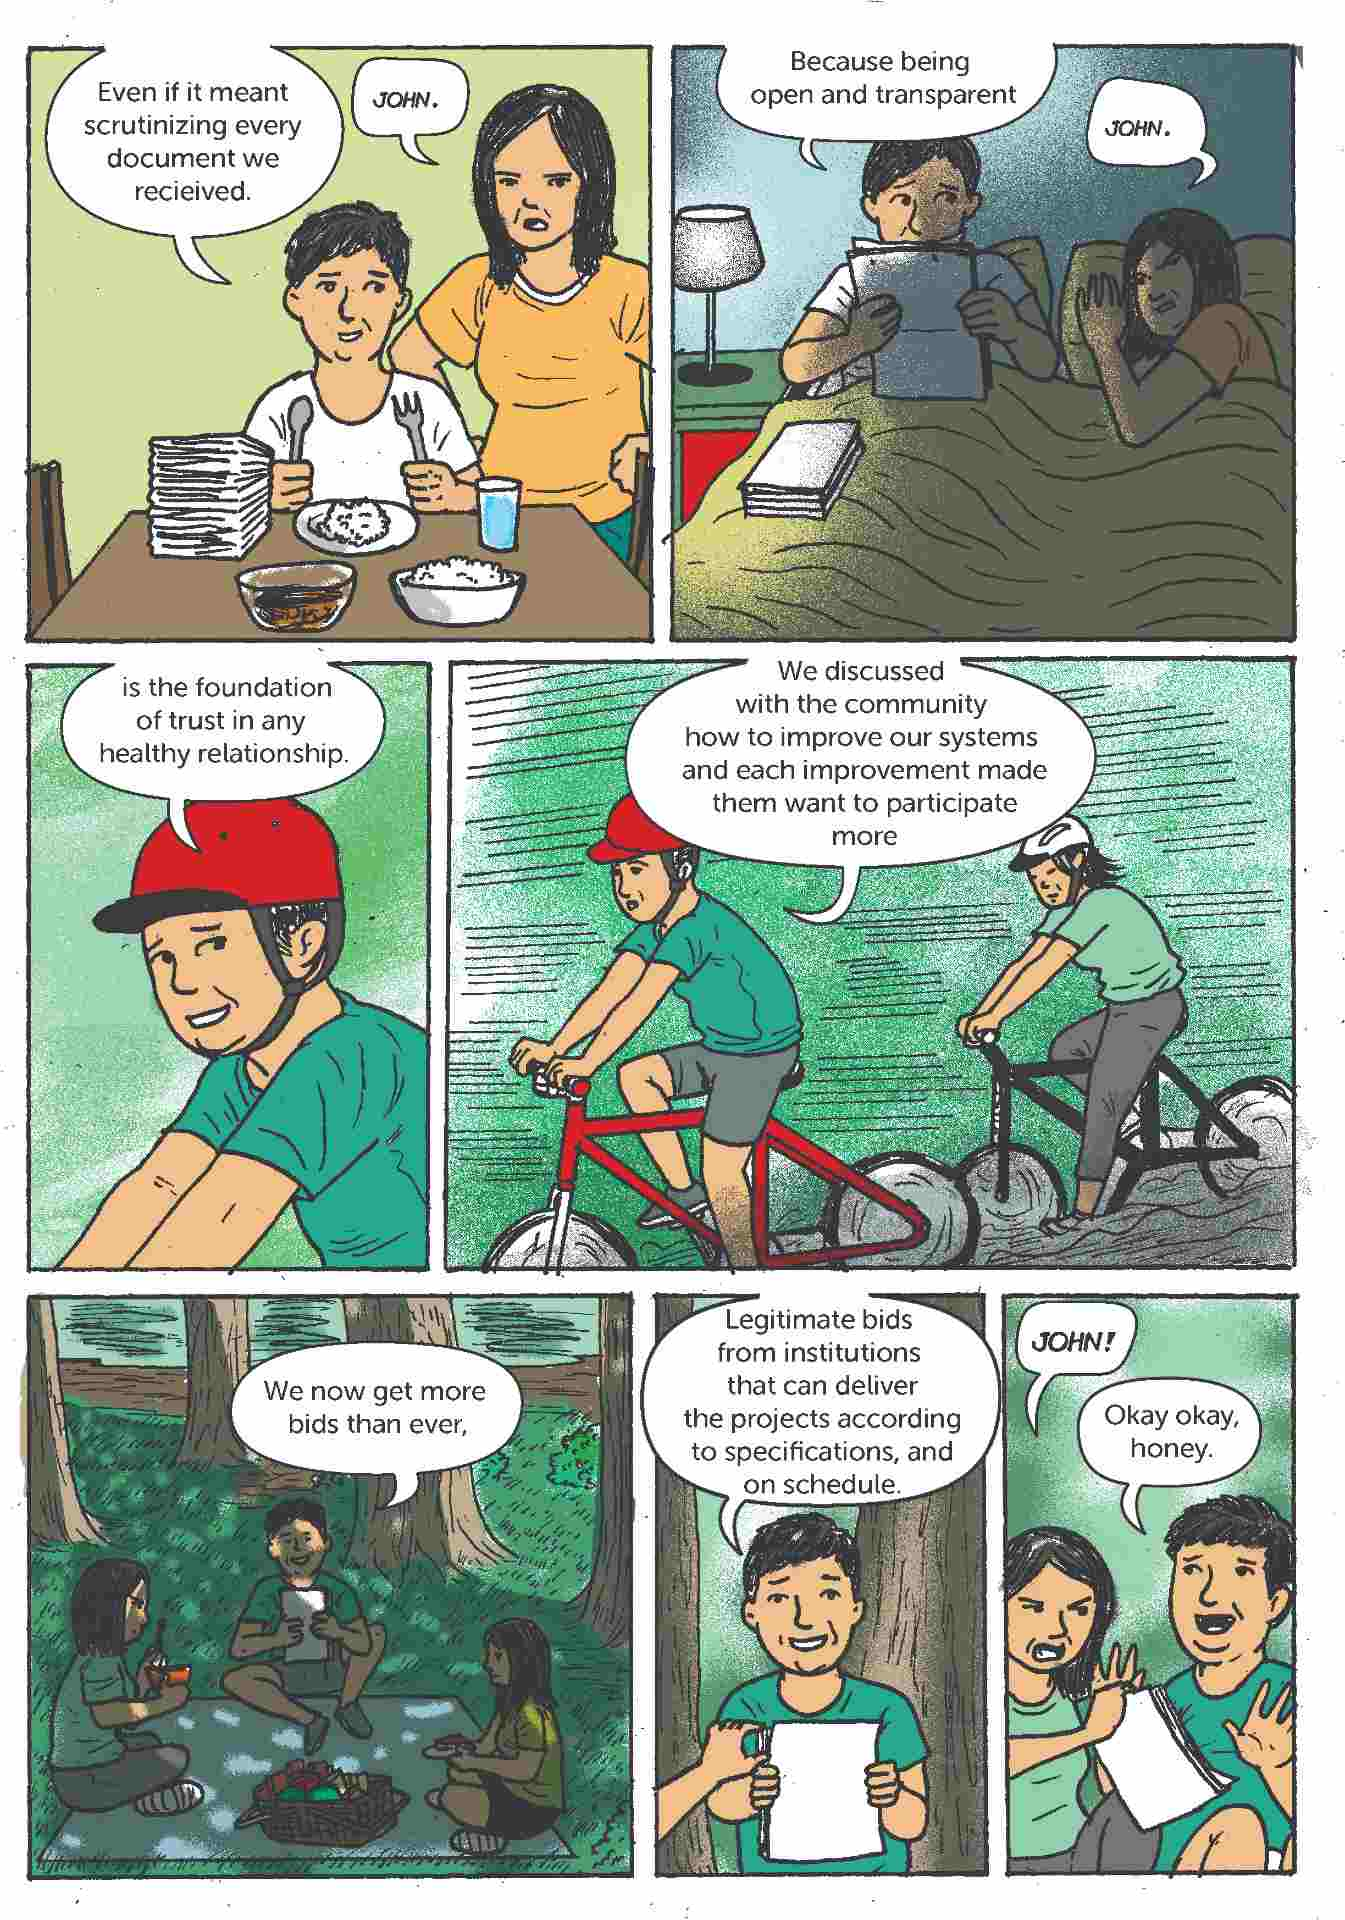 Comic strip about open contracting in the Philippines 5